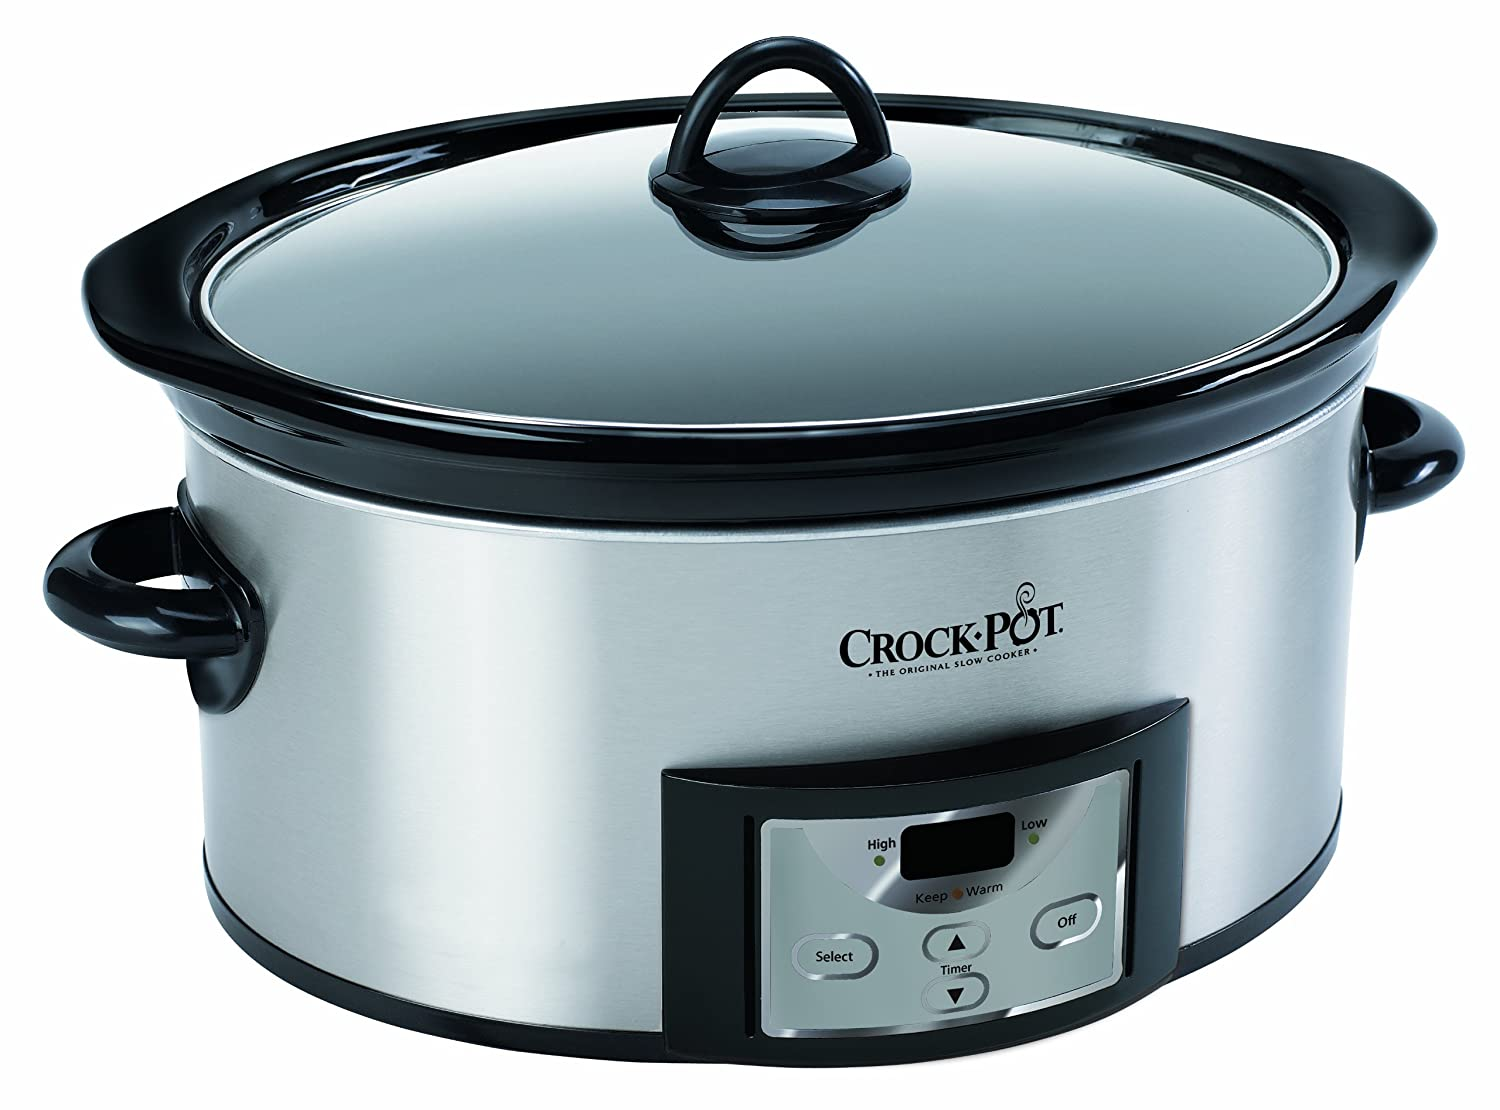 crock pot sccpvc605 s 6 quart countdown oval slow cooker with dipper stainless ebay. Black Bedroom Furniture Sets. Home Design Ideas